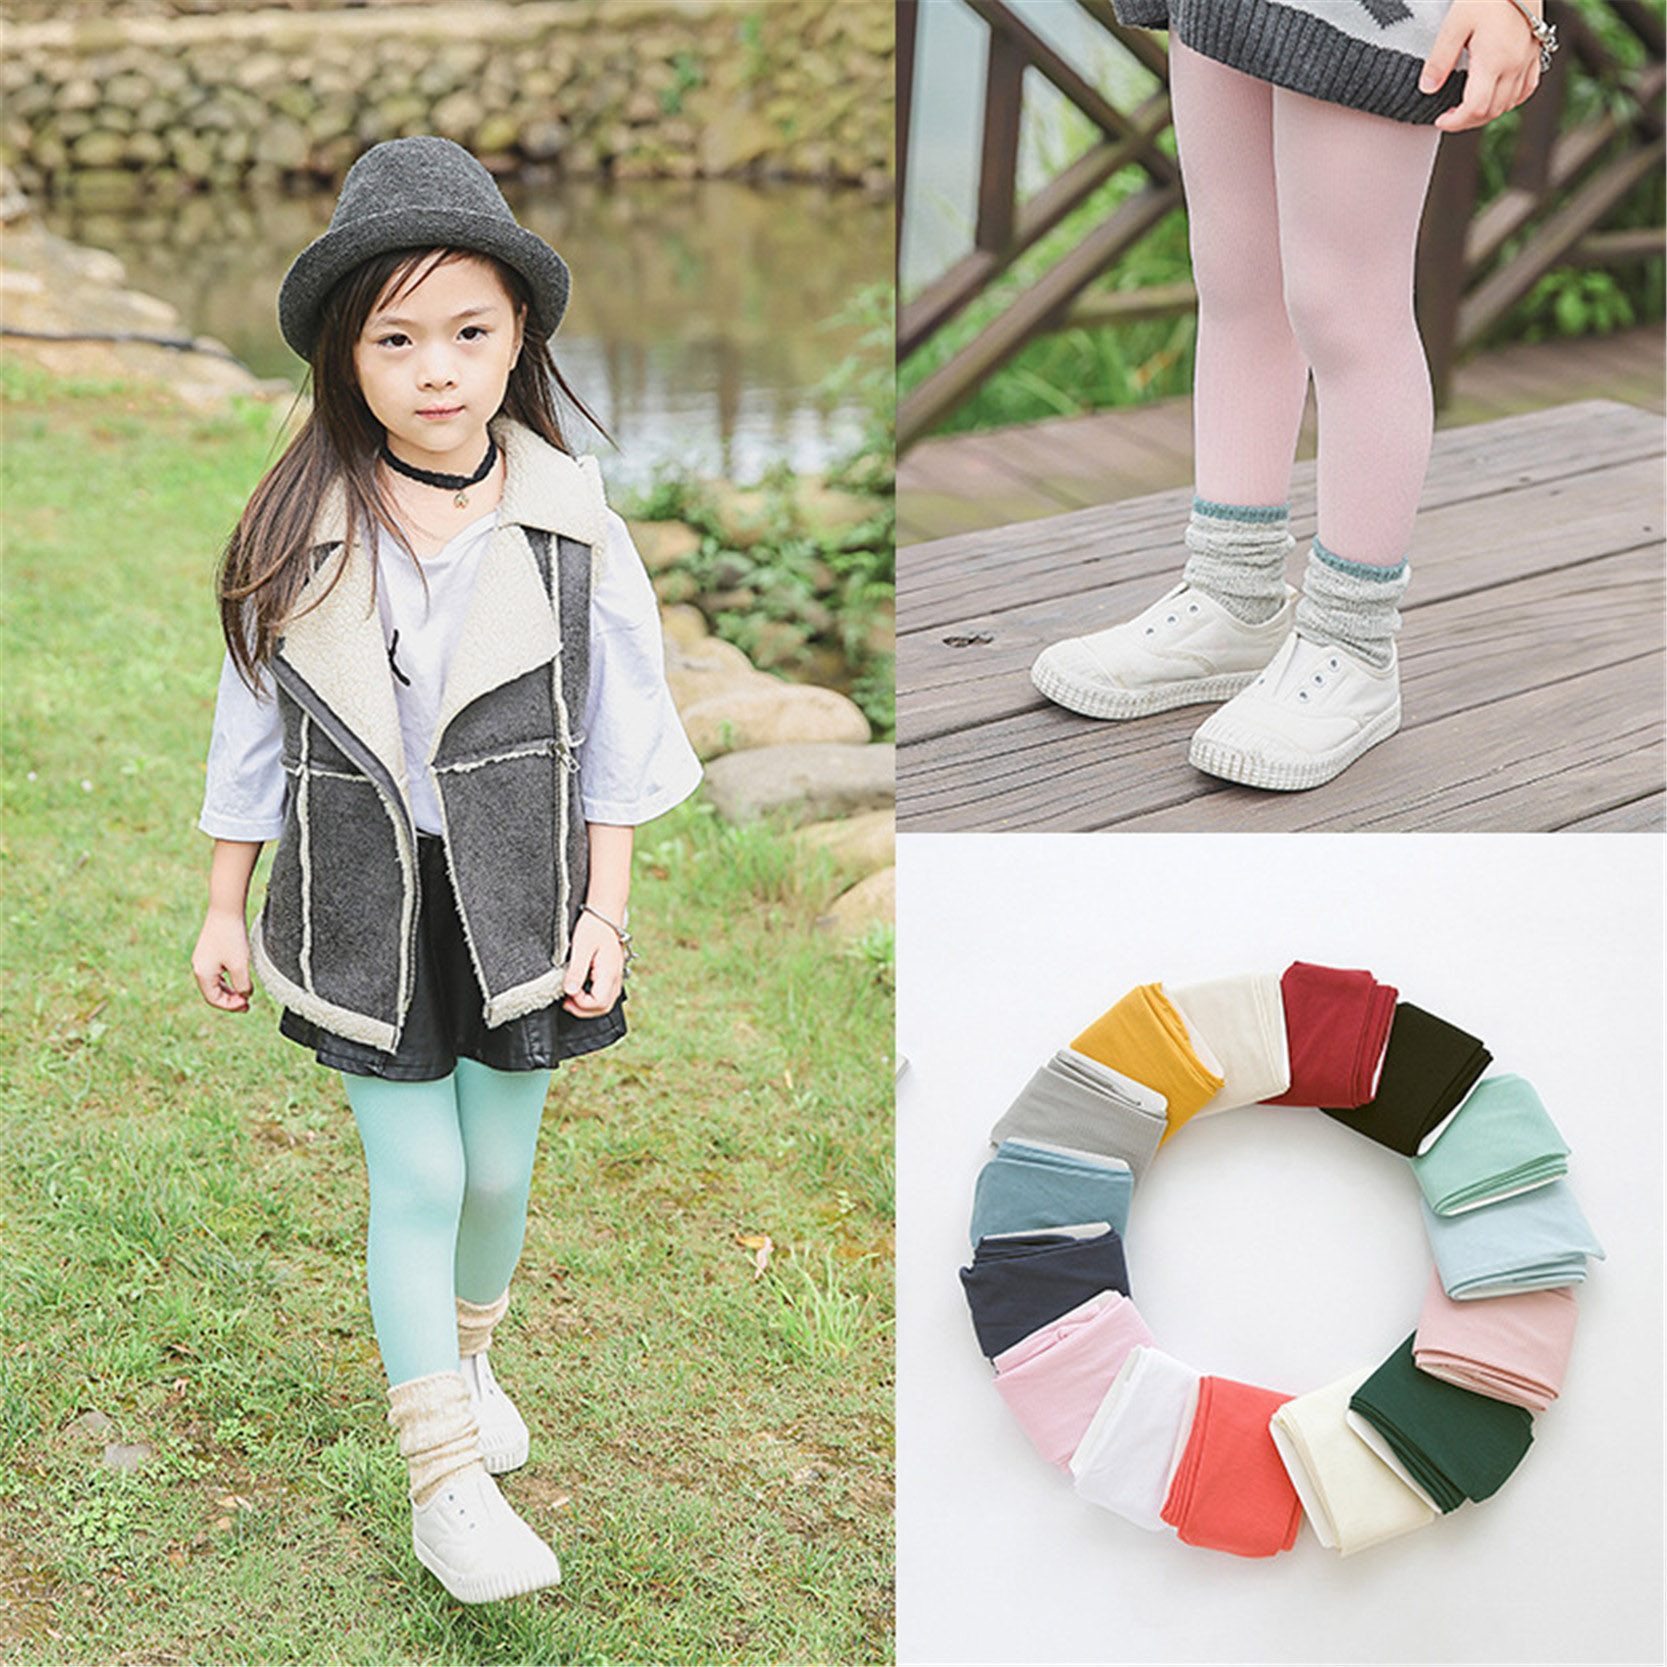 Solid Color Soft Velvet Tights Children Girl Kids Pantyhose Tights Dance Tights Stocking For Baby 2-12 Years rib knit tights